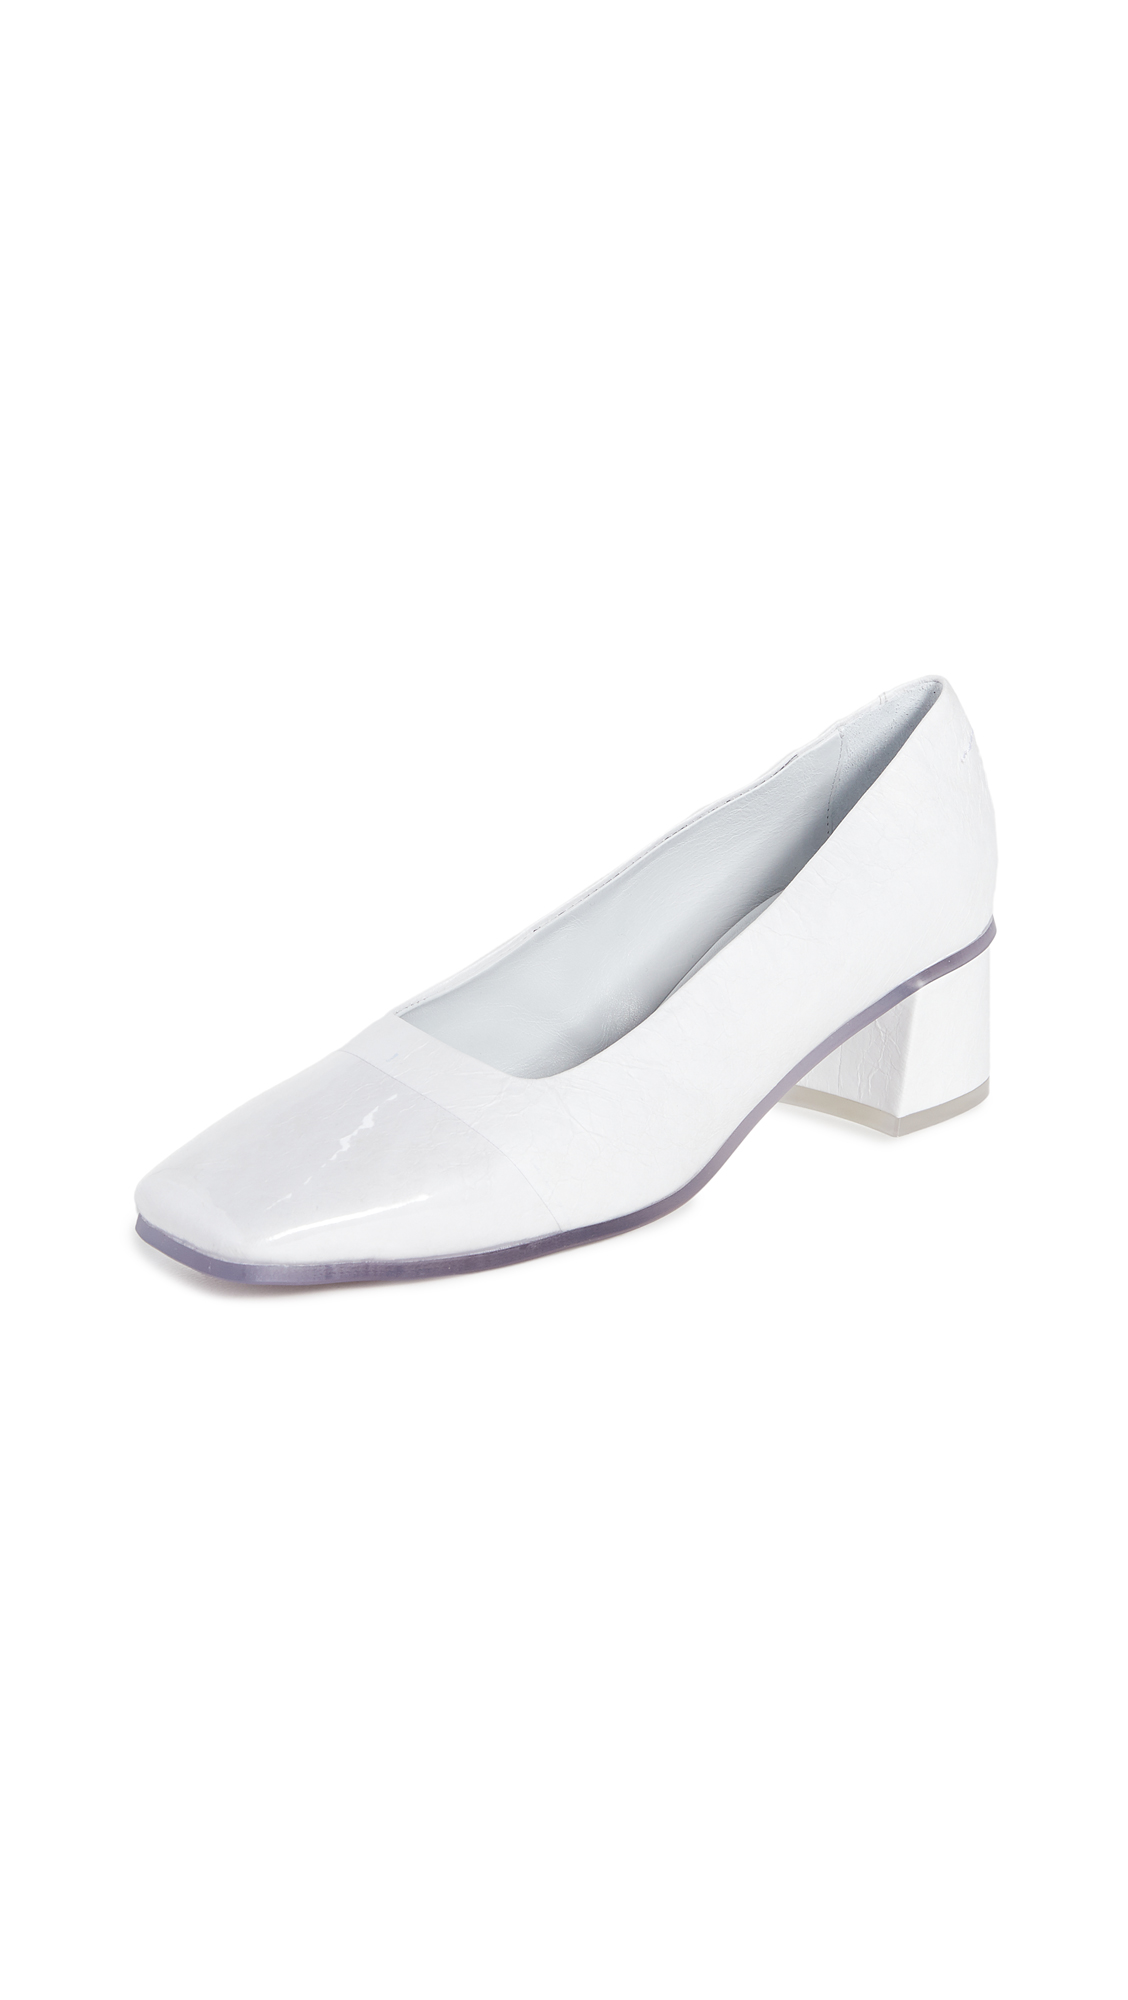 MM6 Maison Margiela Cap Toe Pumps - 50% Off Sale